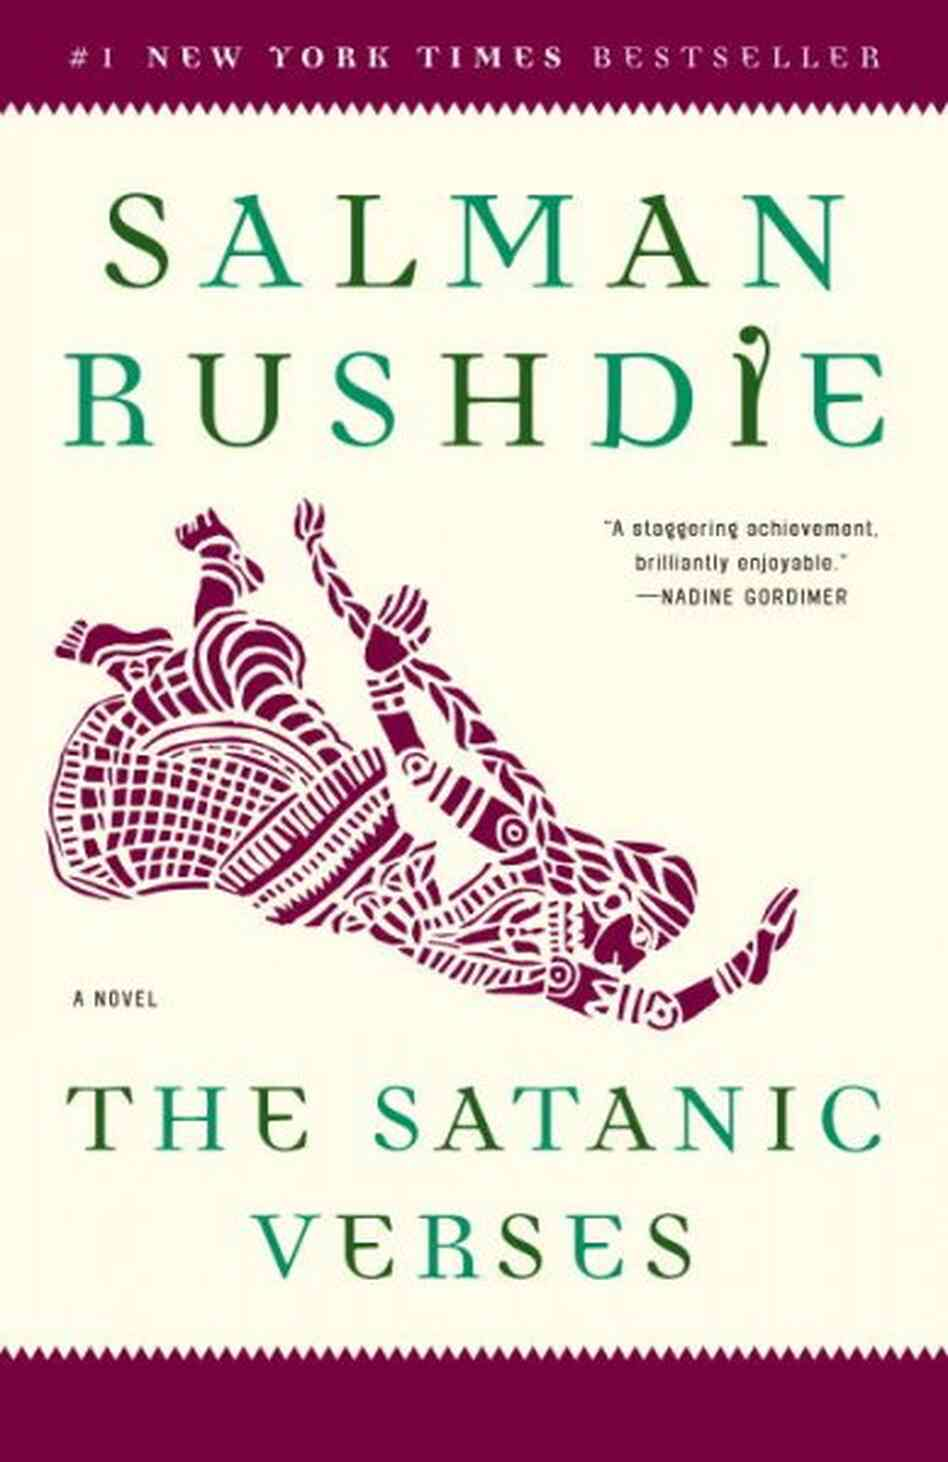 critical essays on the satanic verses Critical essays on salman rushdie for his controversial novel the satanic verses , for which he was accused of blasphemy against critical essays on salman.